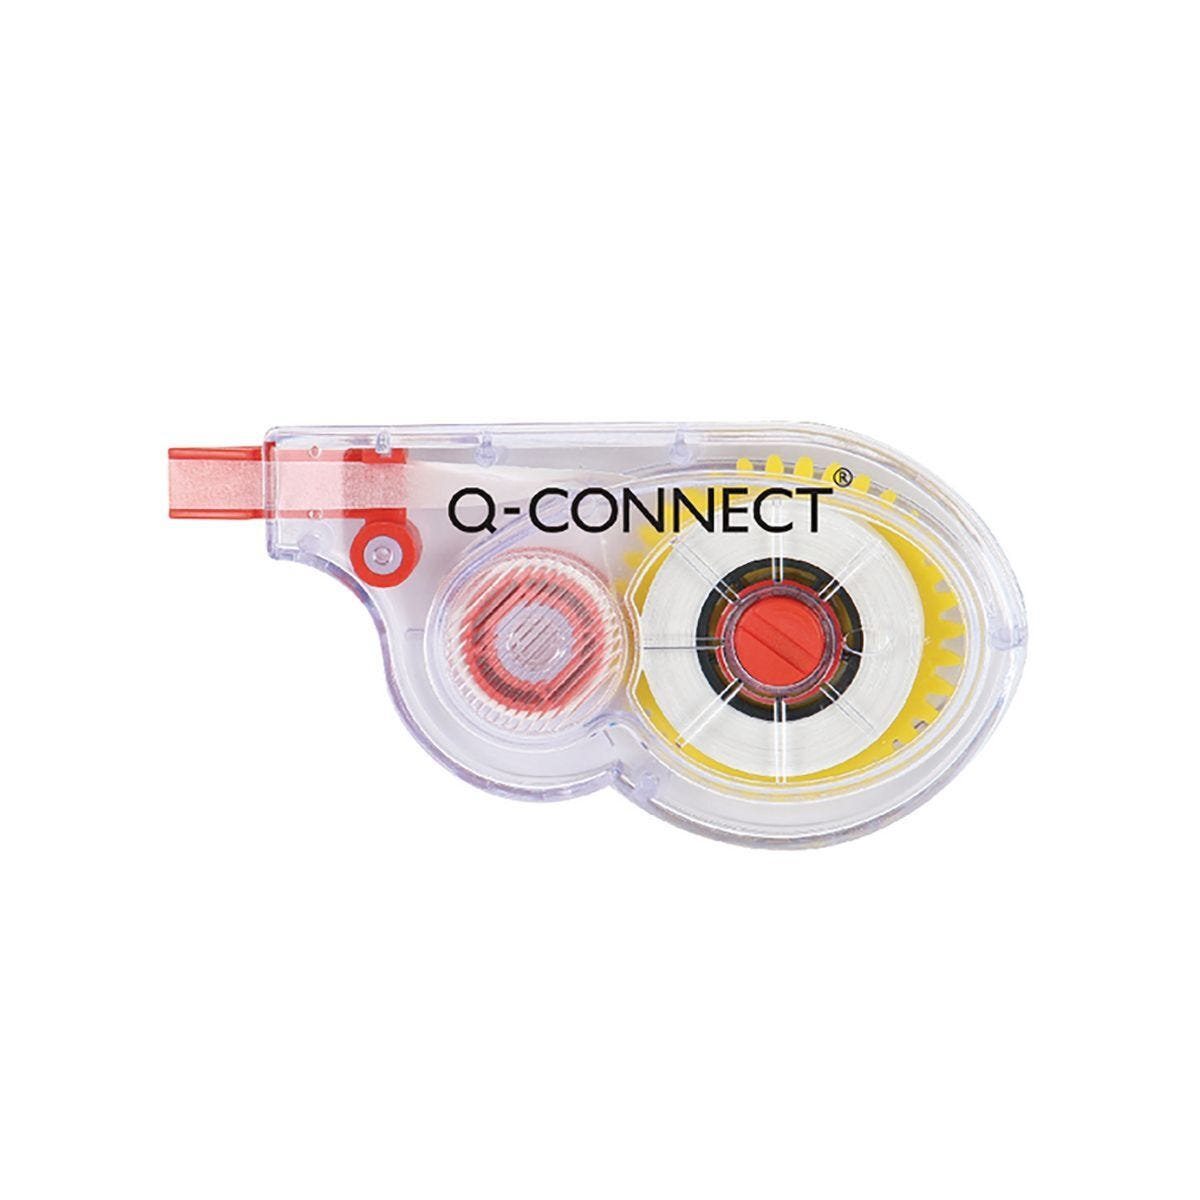 Q-Connect Correction Roller Pack of 12